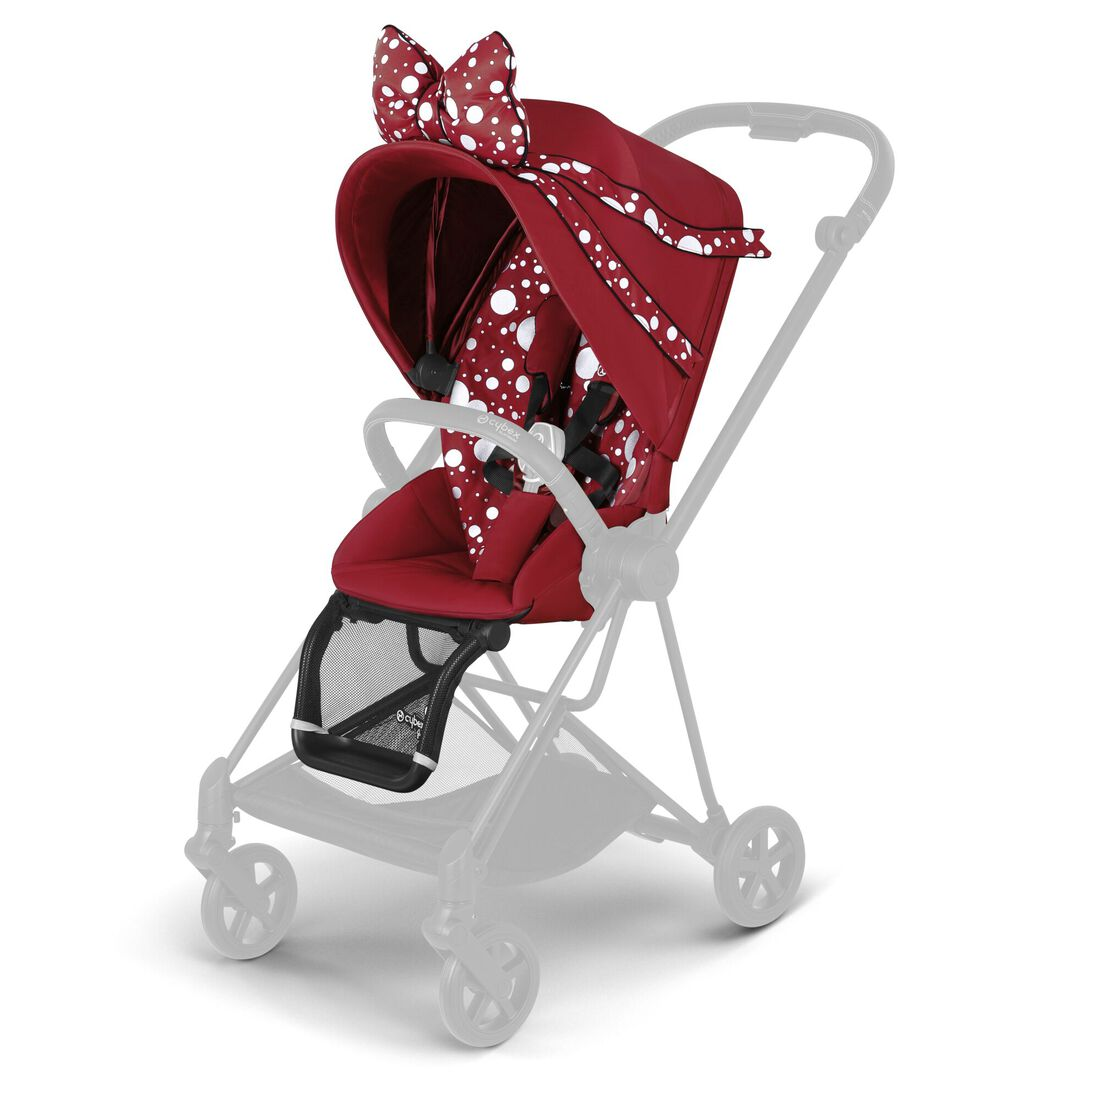 CYBEX Mios Seat Pack - Petticoat Red in Petticoat Red large image number 1